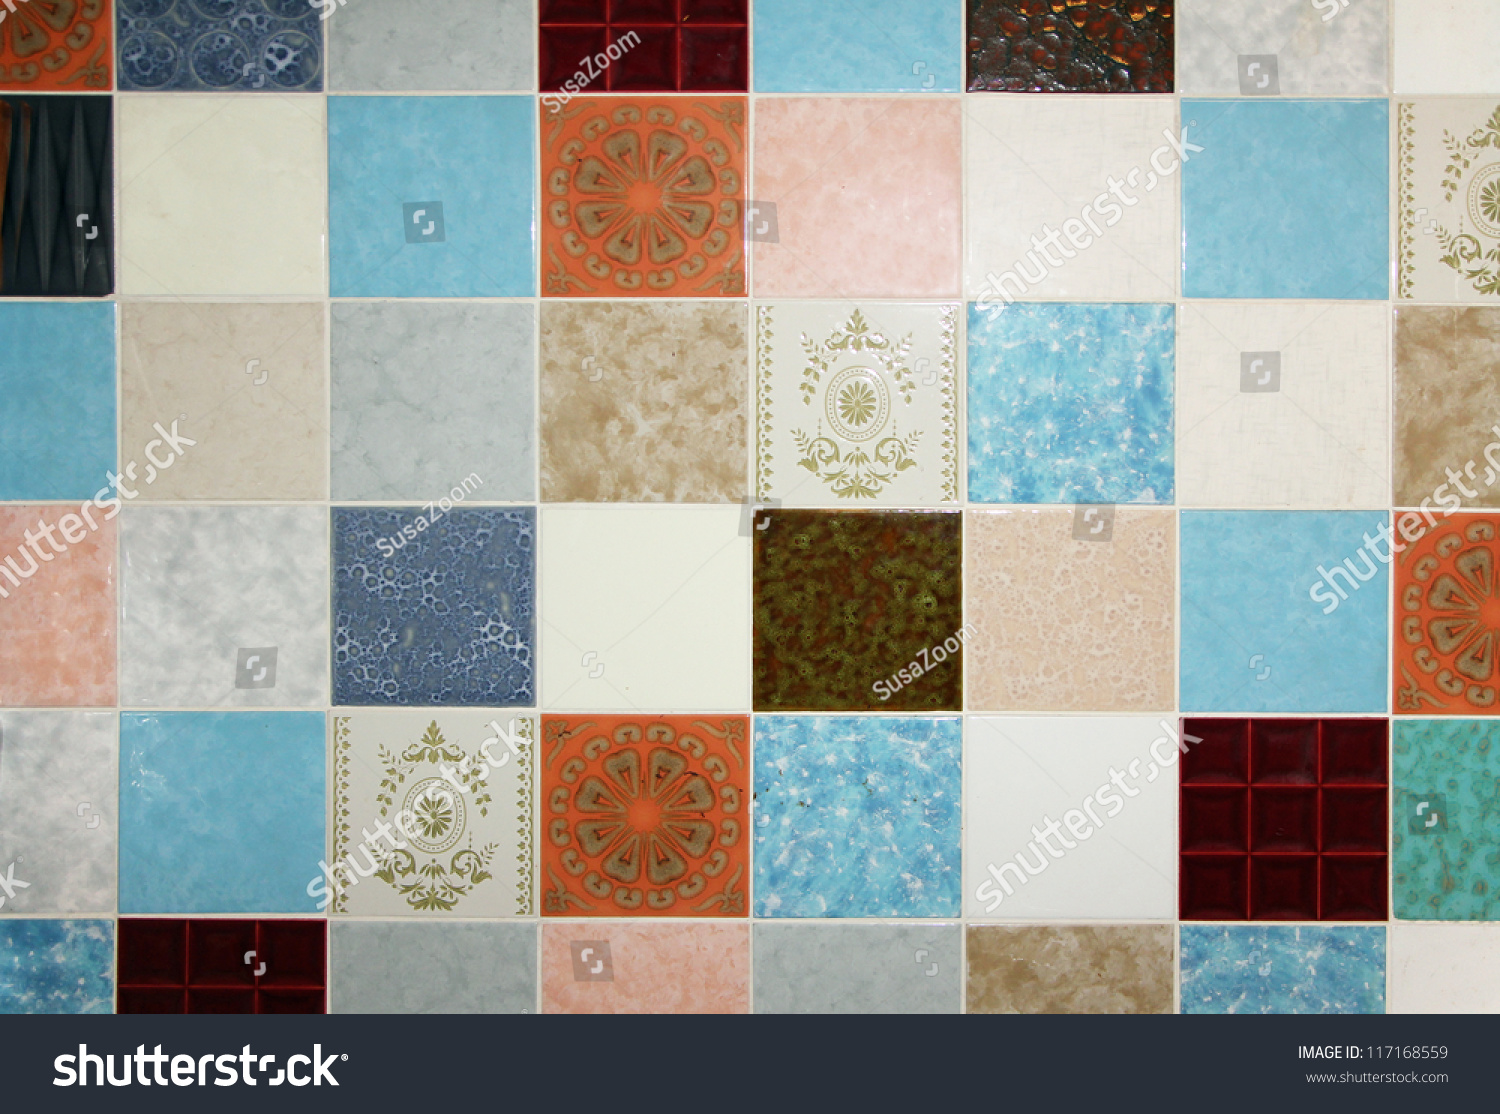 Background Motley Wall Tiles Mixed All Stock Photo 117168559 ...